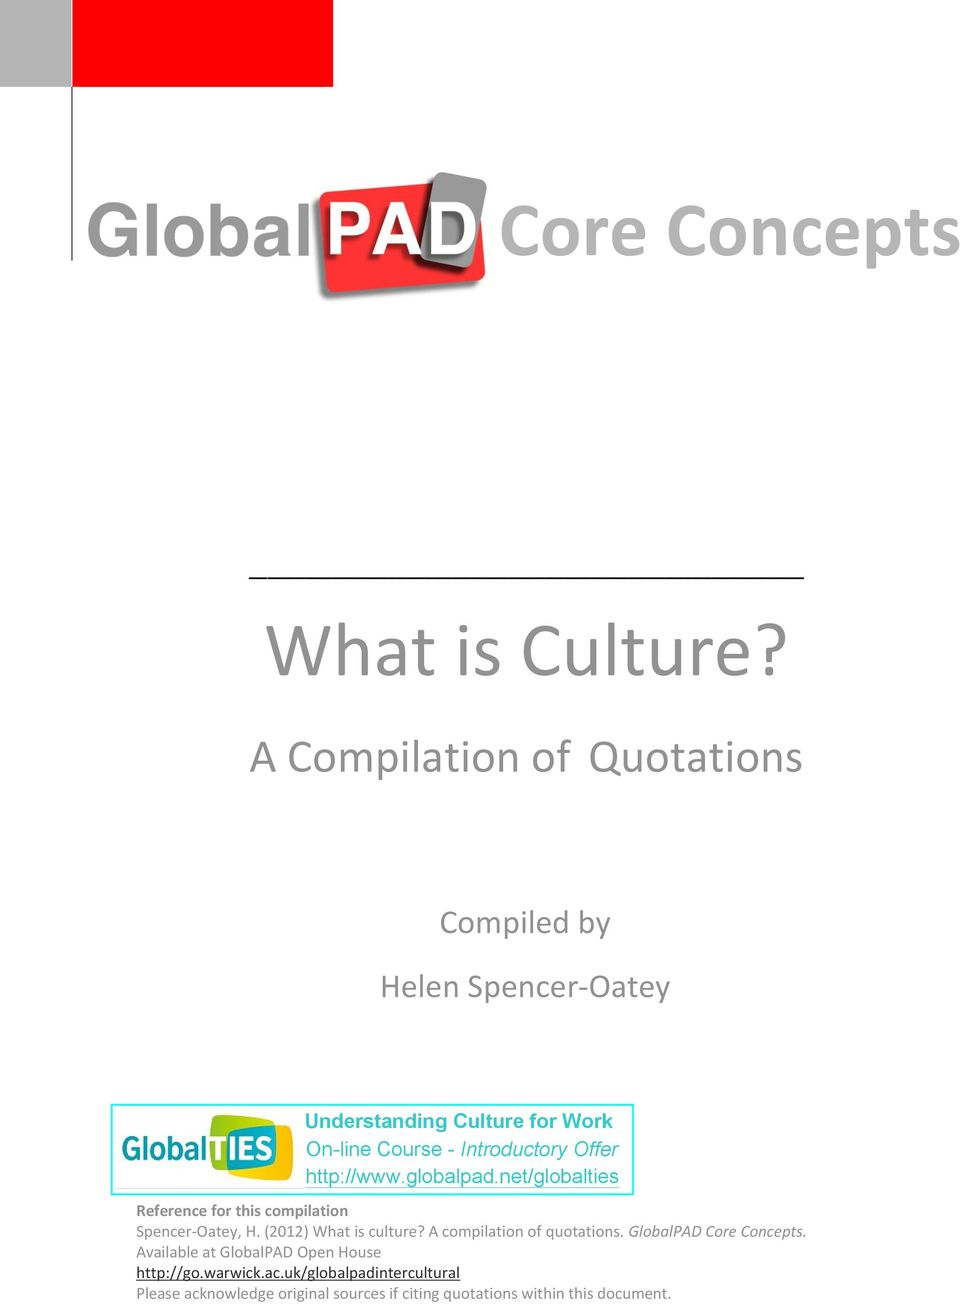 Spencer-Oatey, H. (2012) What is culture? A compilation of quotations.